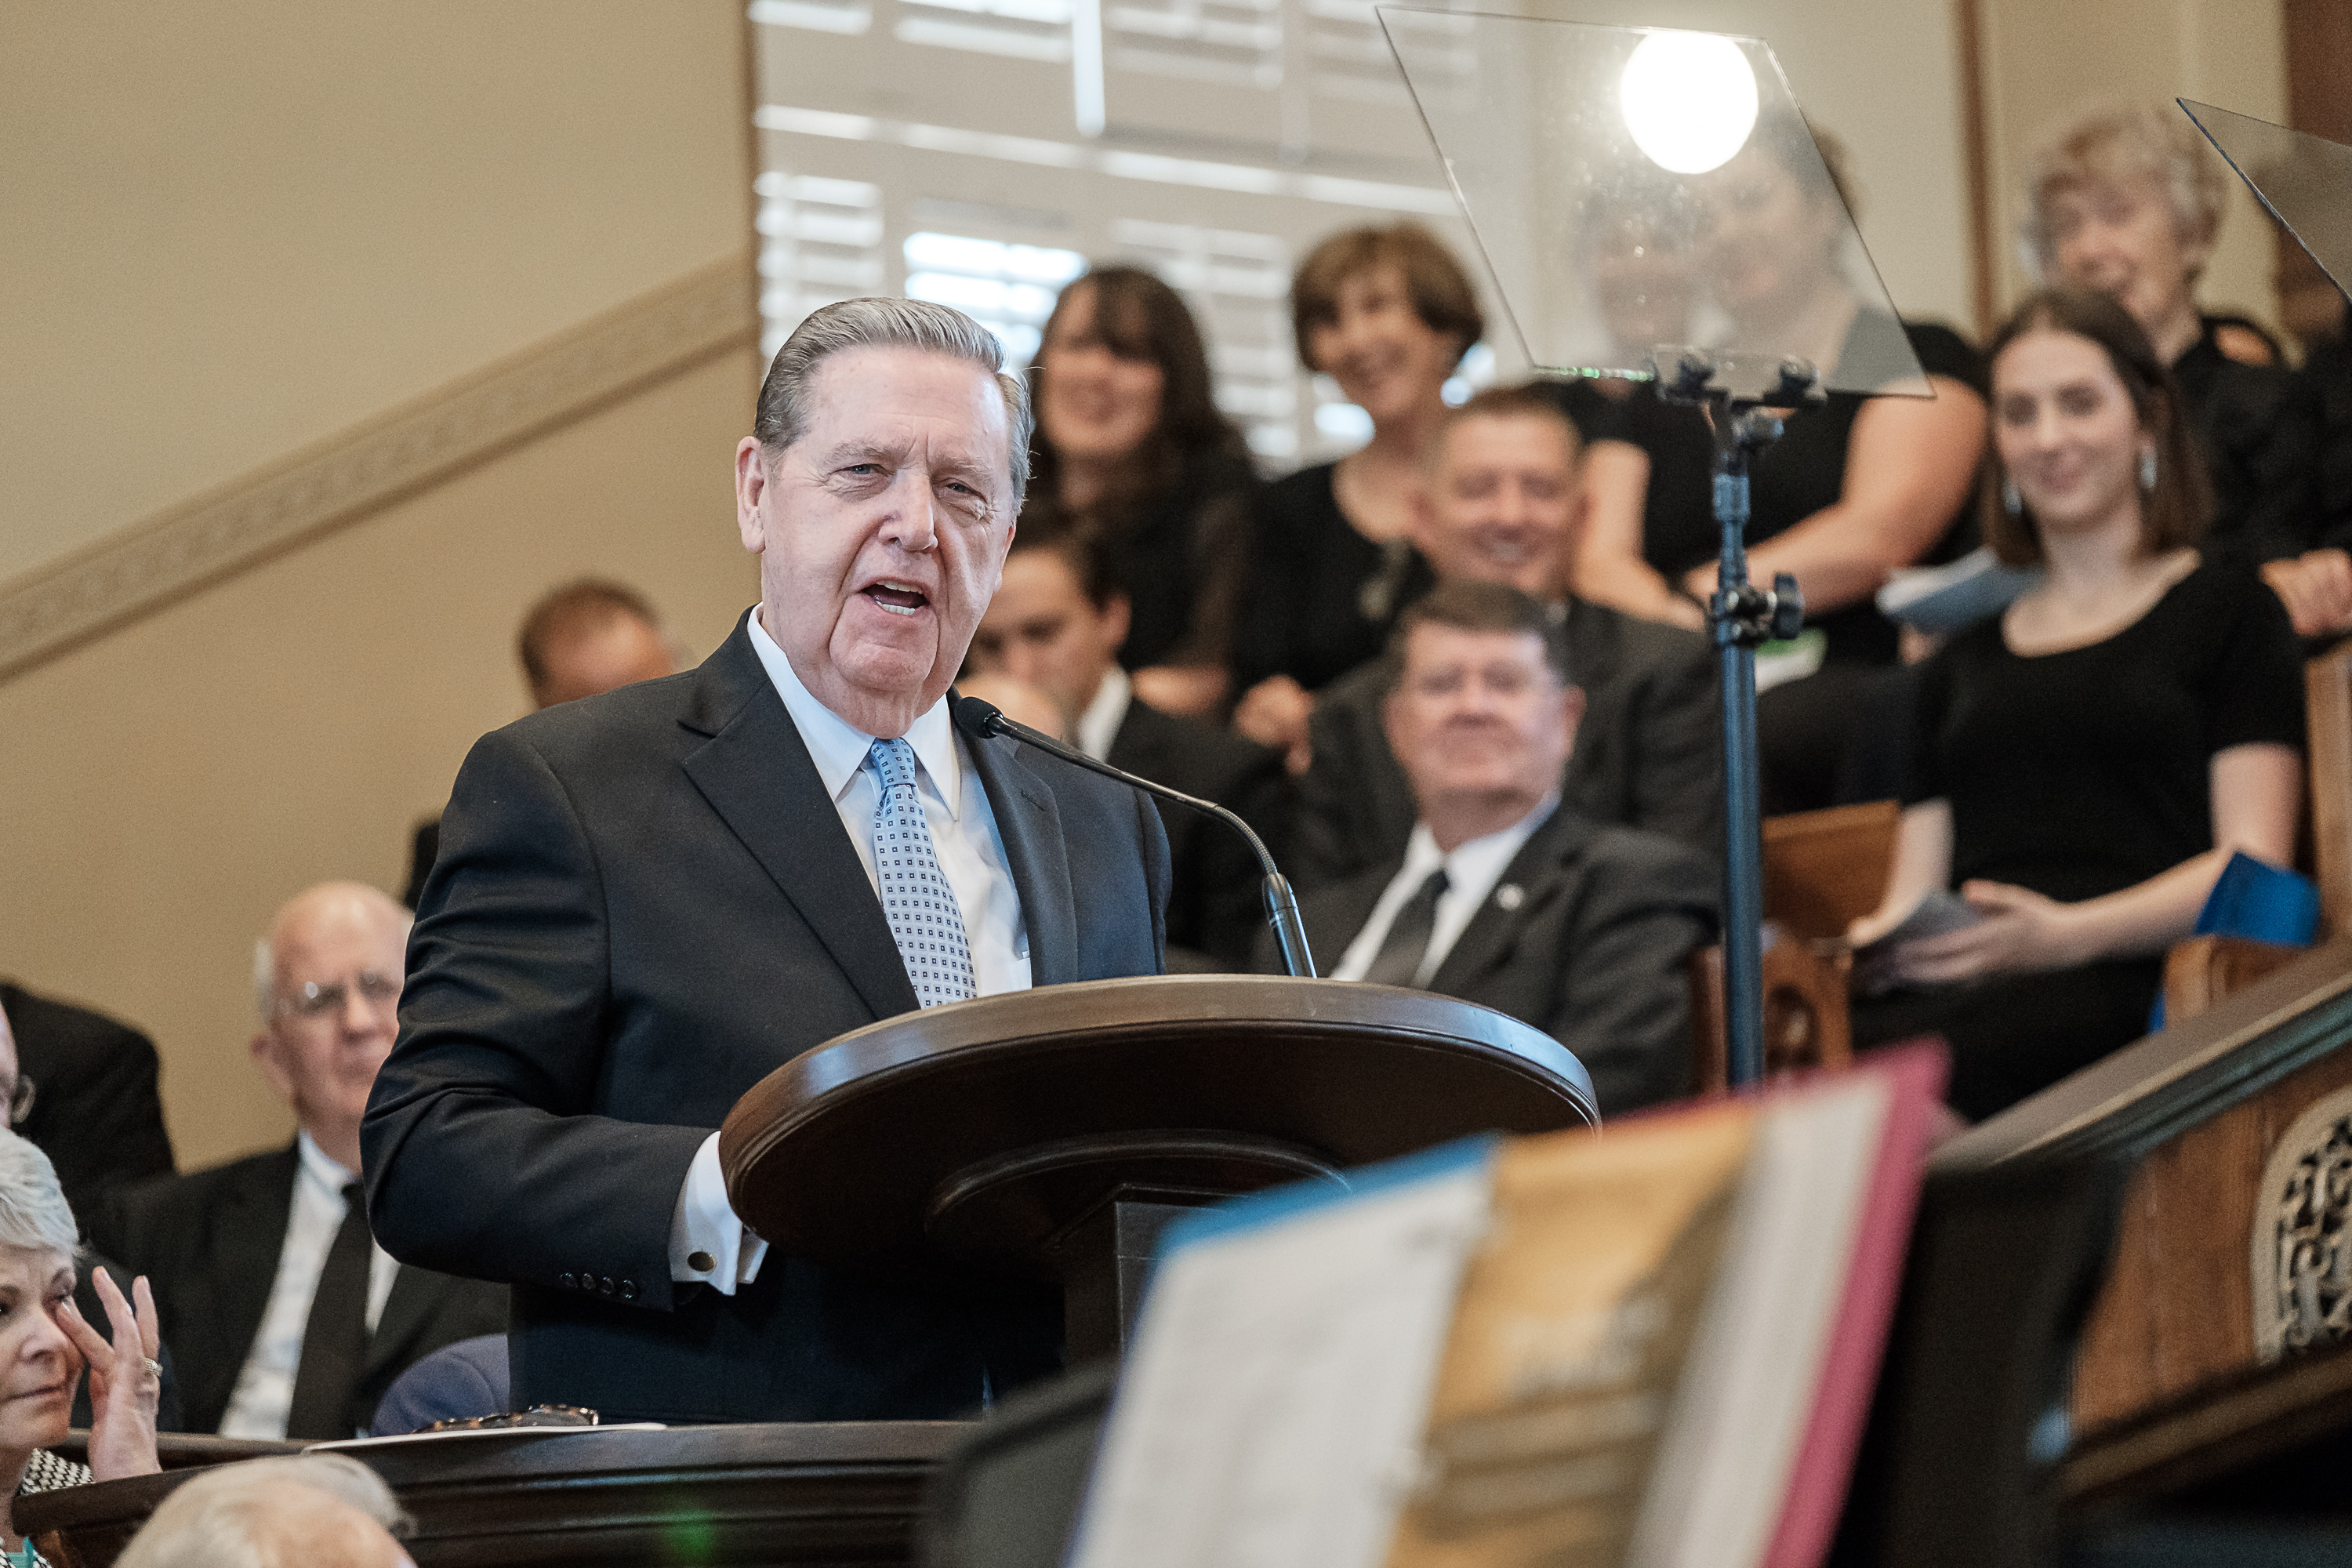 Elder Jeffrey R. Holland of the Quorum of the Twelve Apostles of The Church of Jesus Christ of Latter-day Saints speaks Saturday, July 28, 2018, in the St. George Tabernacle in St. George, Utah. The 147 year old building was rededicated after a two-year renovation.